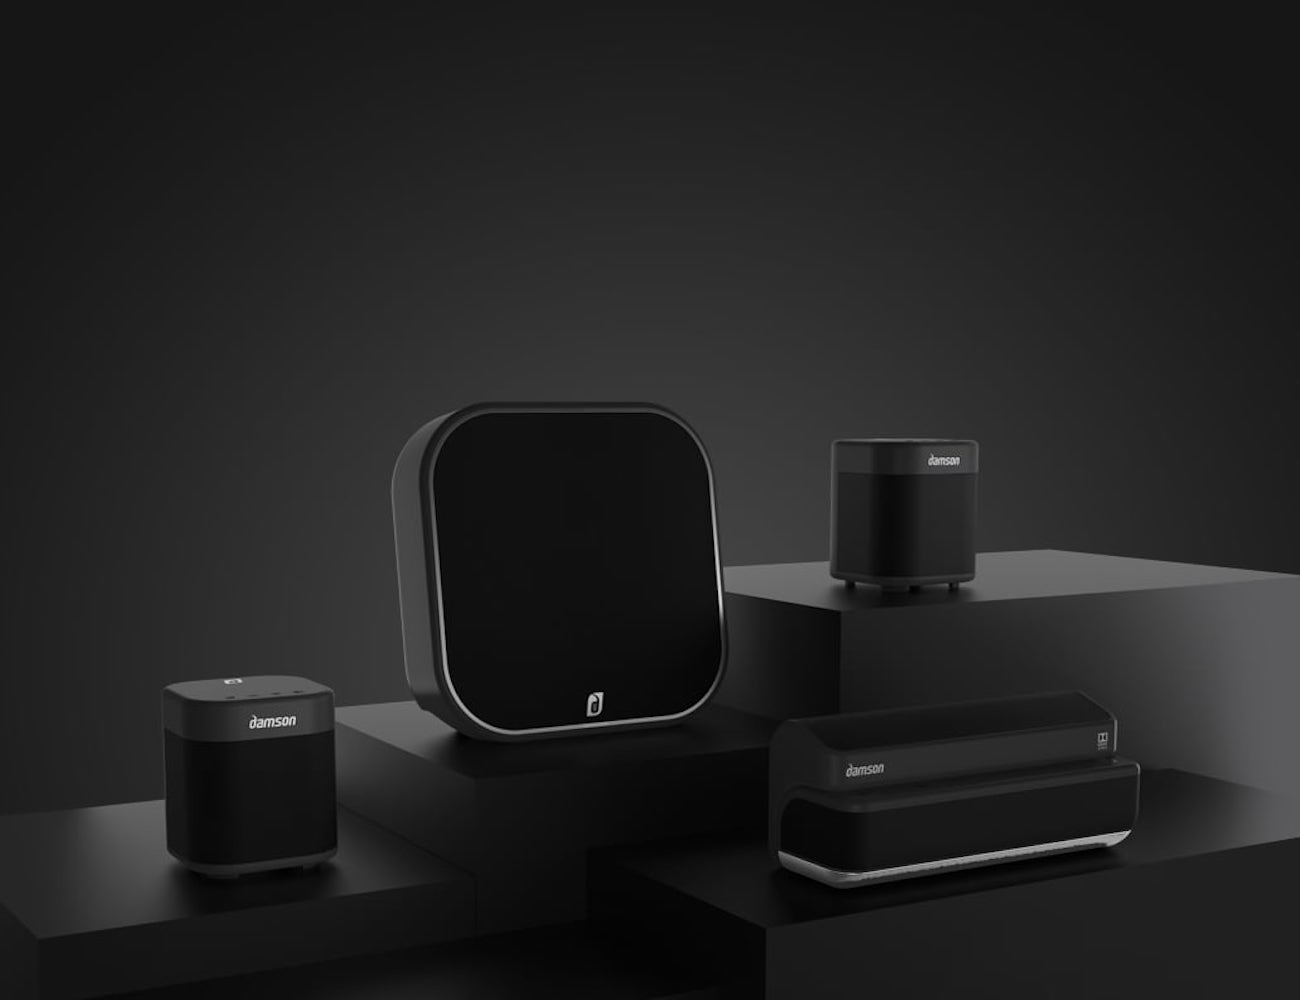 Damson Wireless Home Cinema System provides movie theater sound quality at home